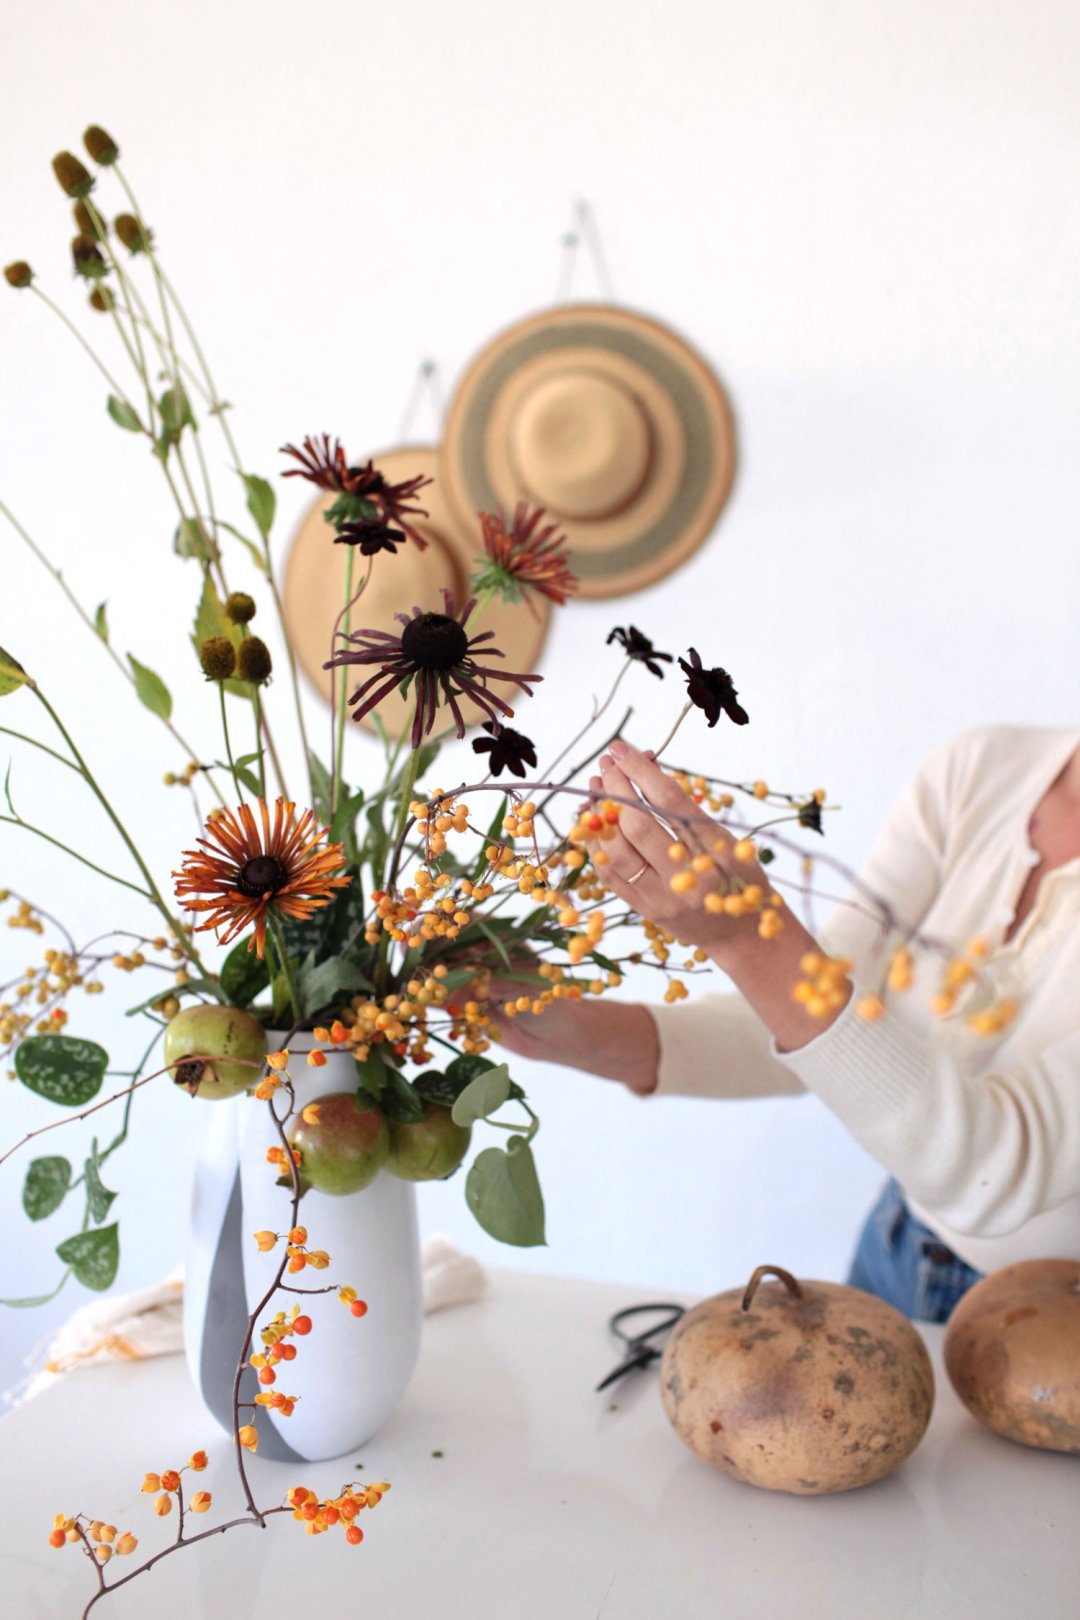 Arranging black eyed susans in a fall bouquet in a white vase